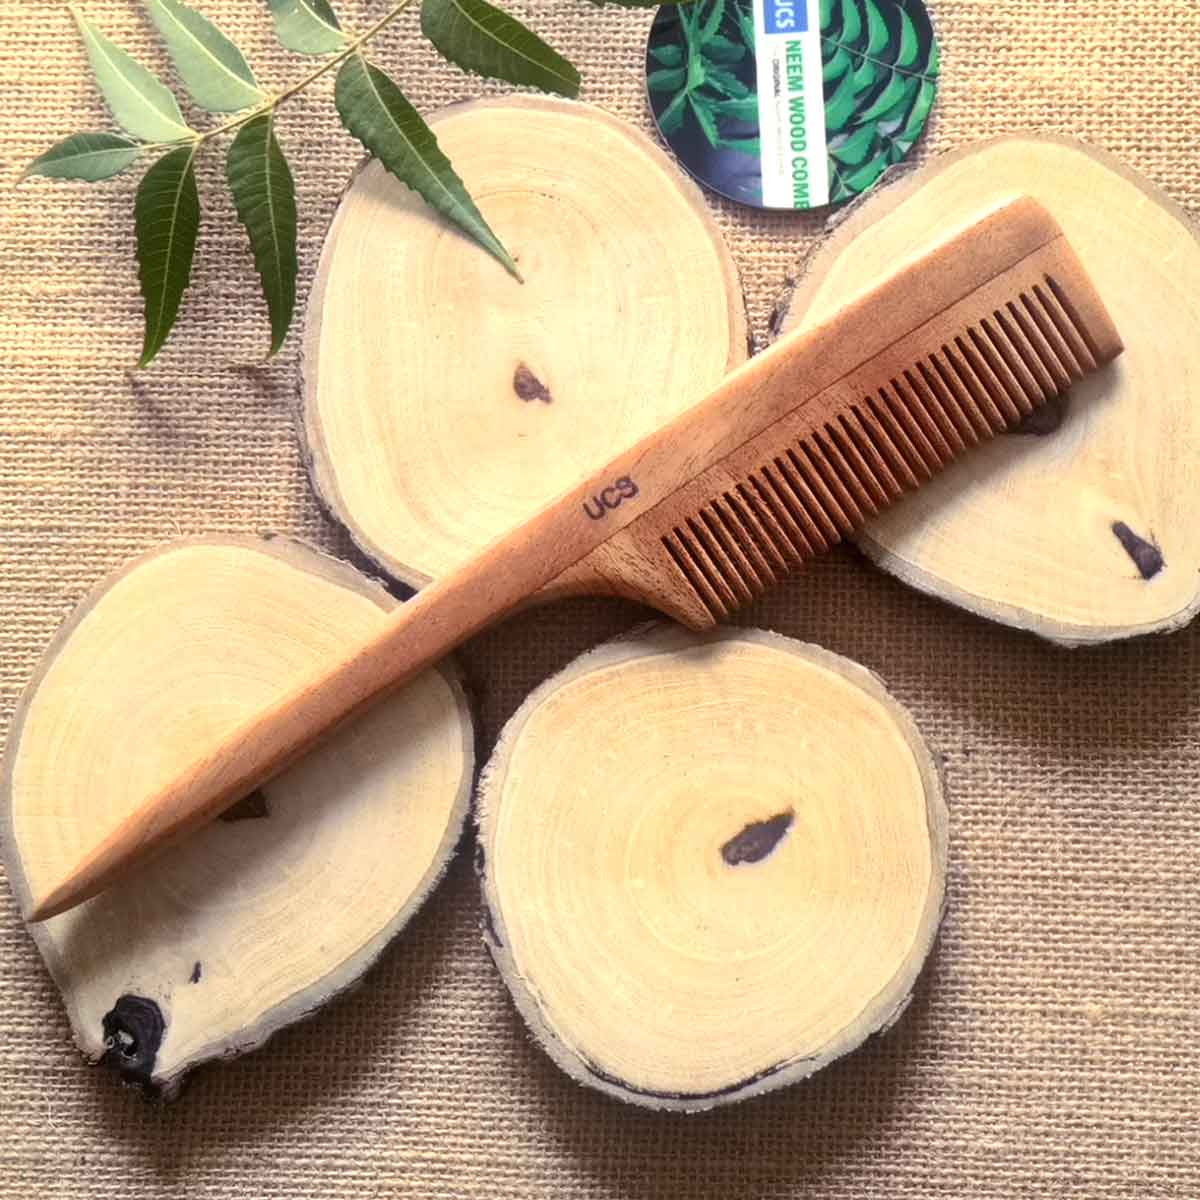 UCS Neem Wood Tail Comb 1 Hair Comb (UCS1017)